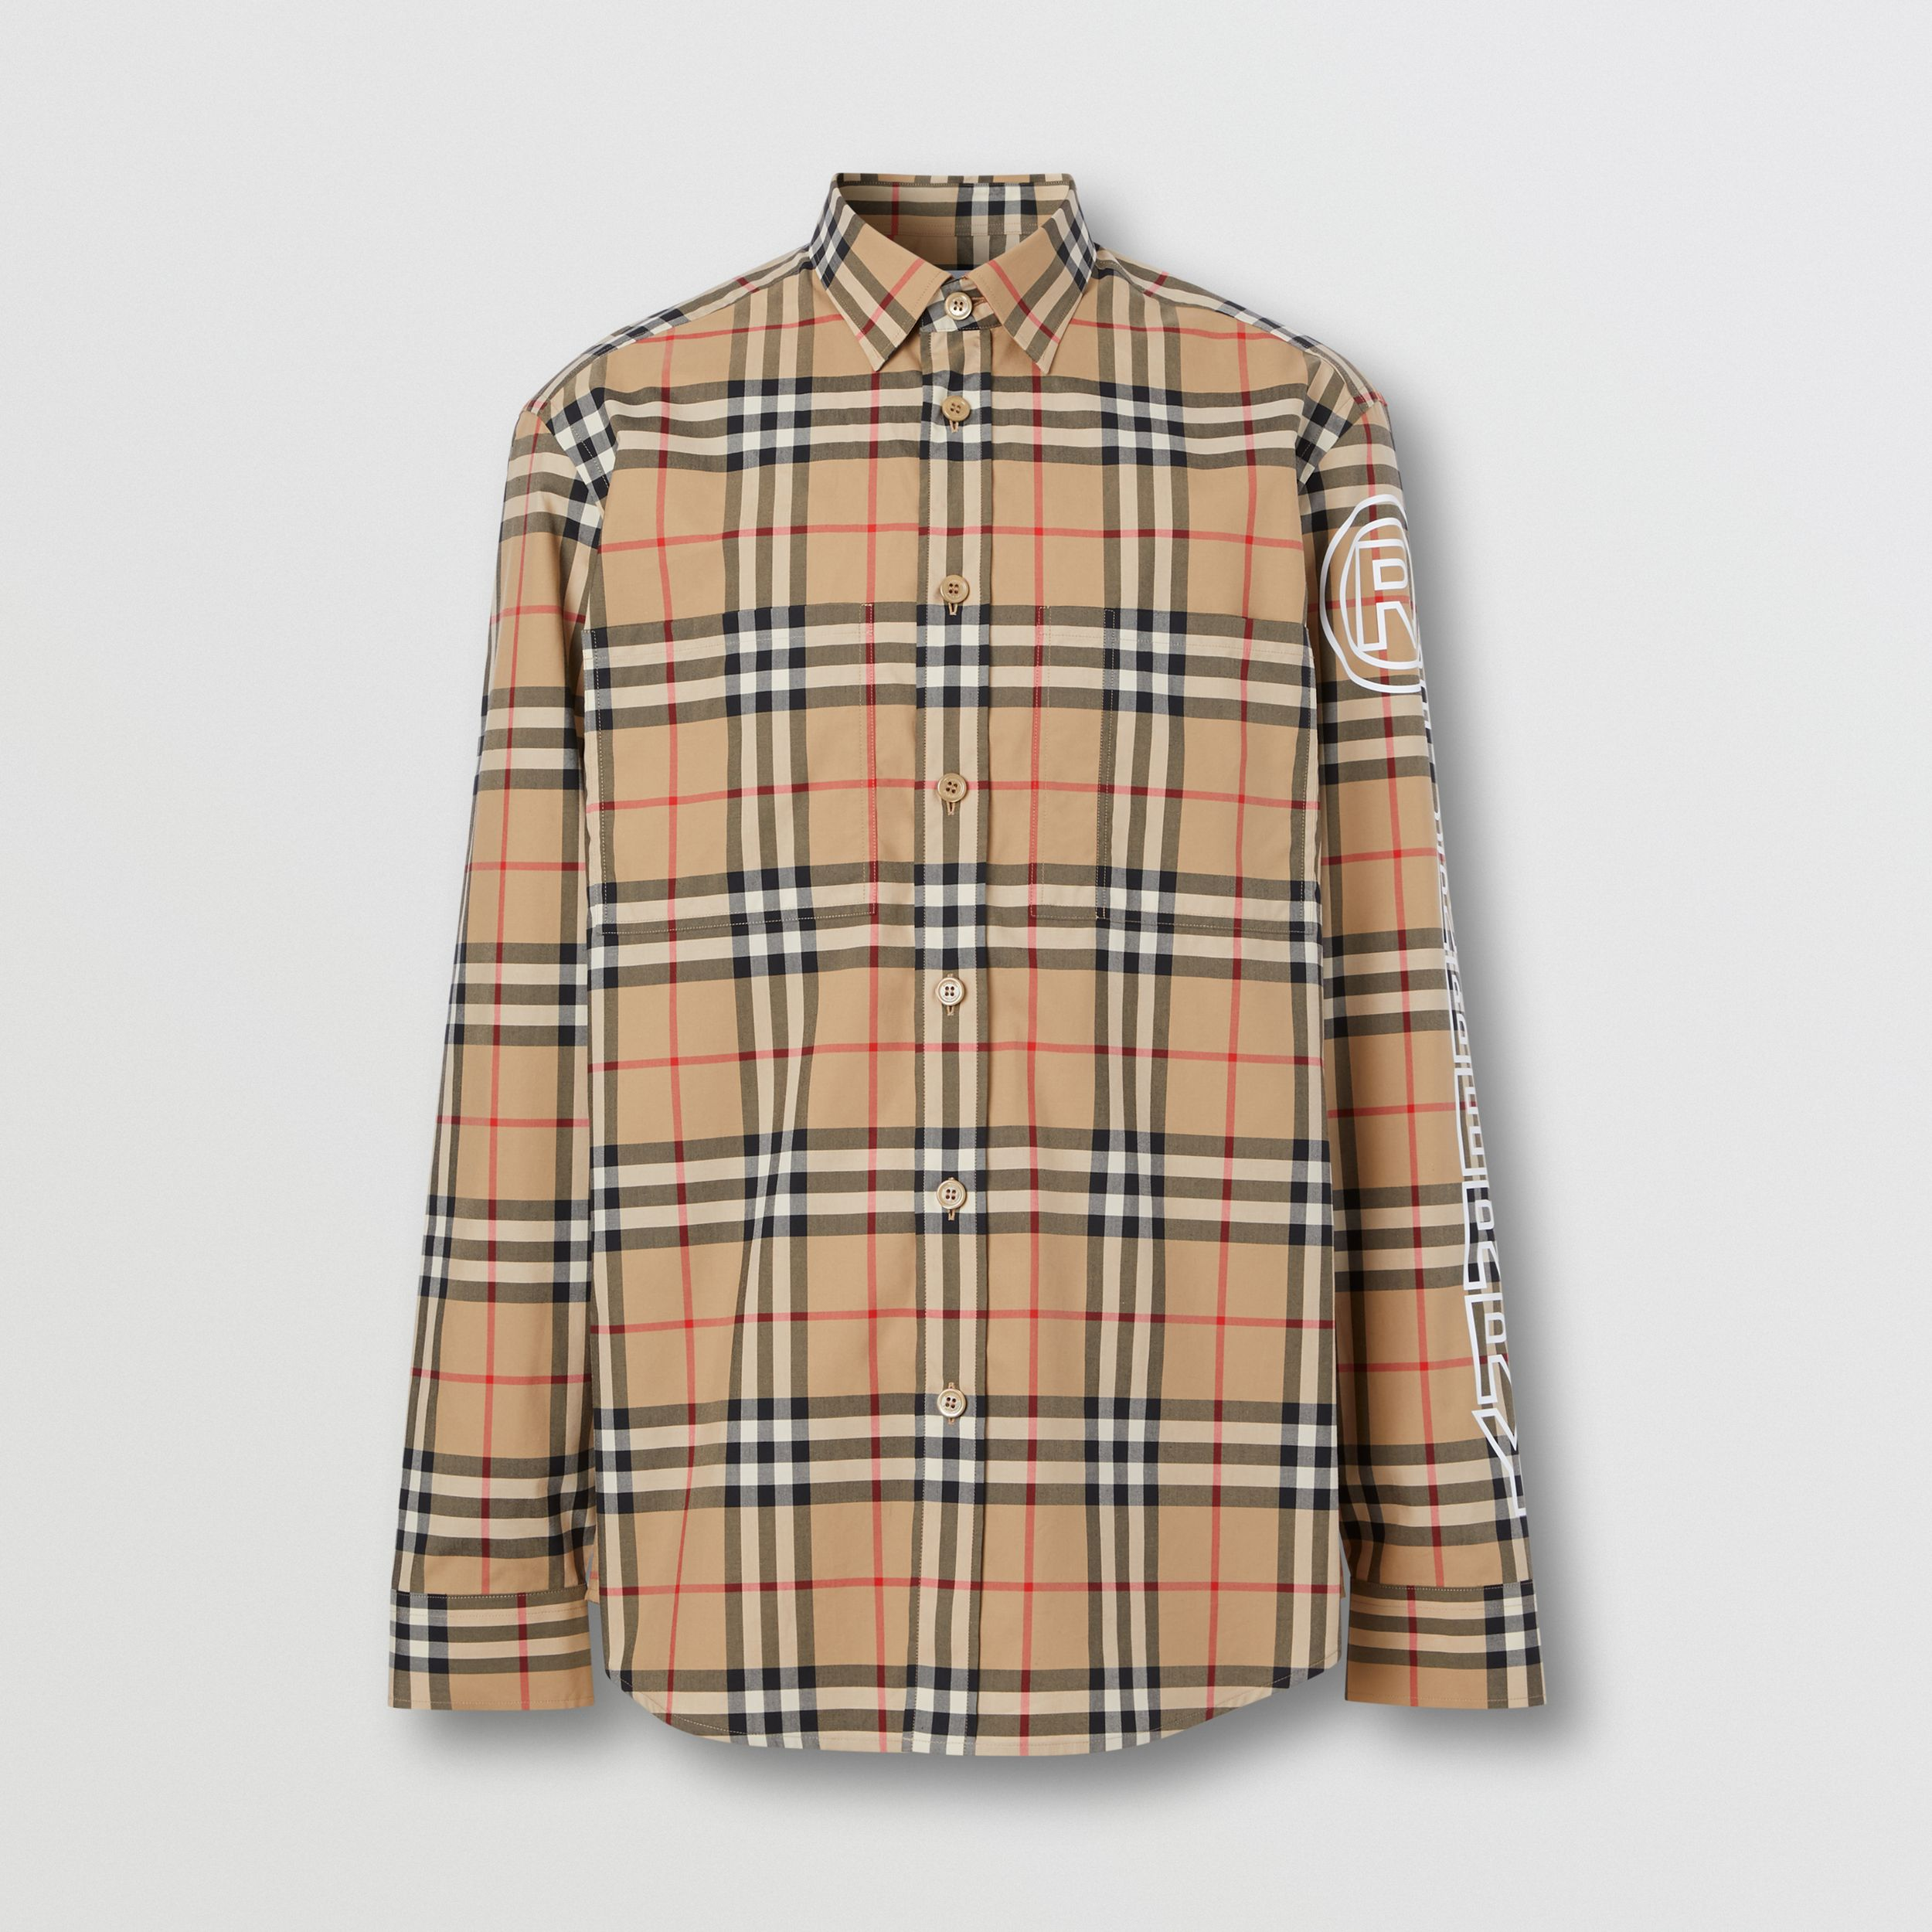 Logo Print Vintage Check Cotton Poplin Shirt in Archive Beige - Men | Burberry - 4